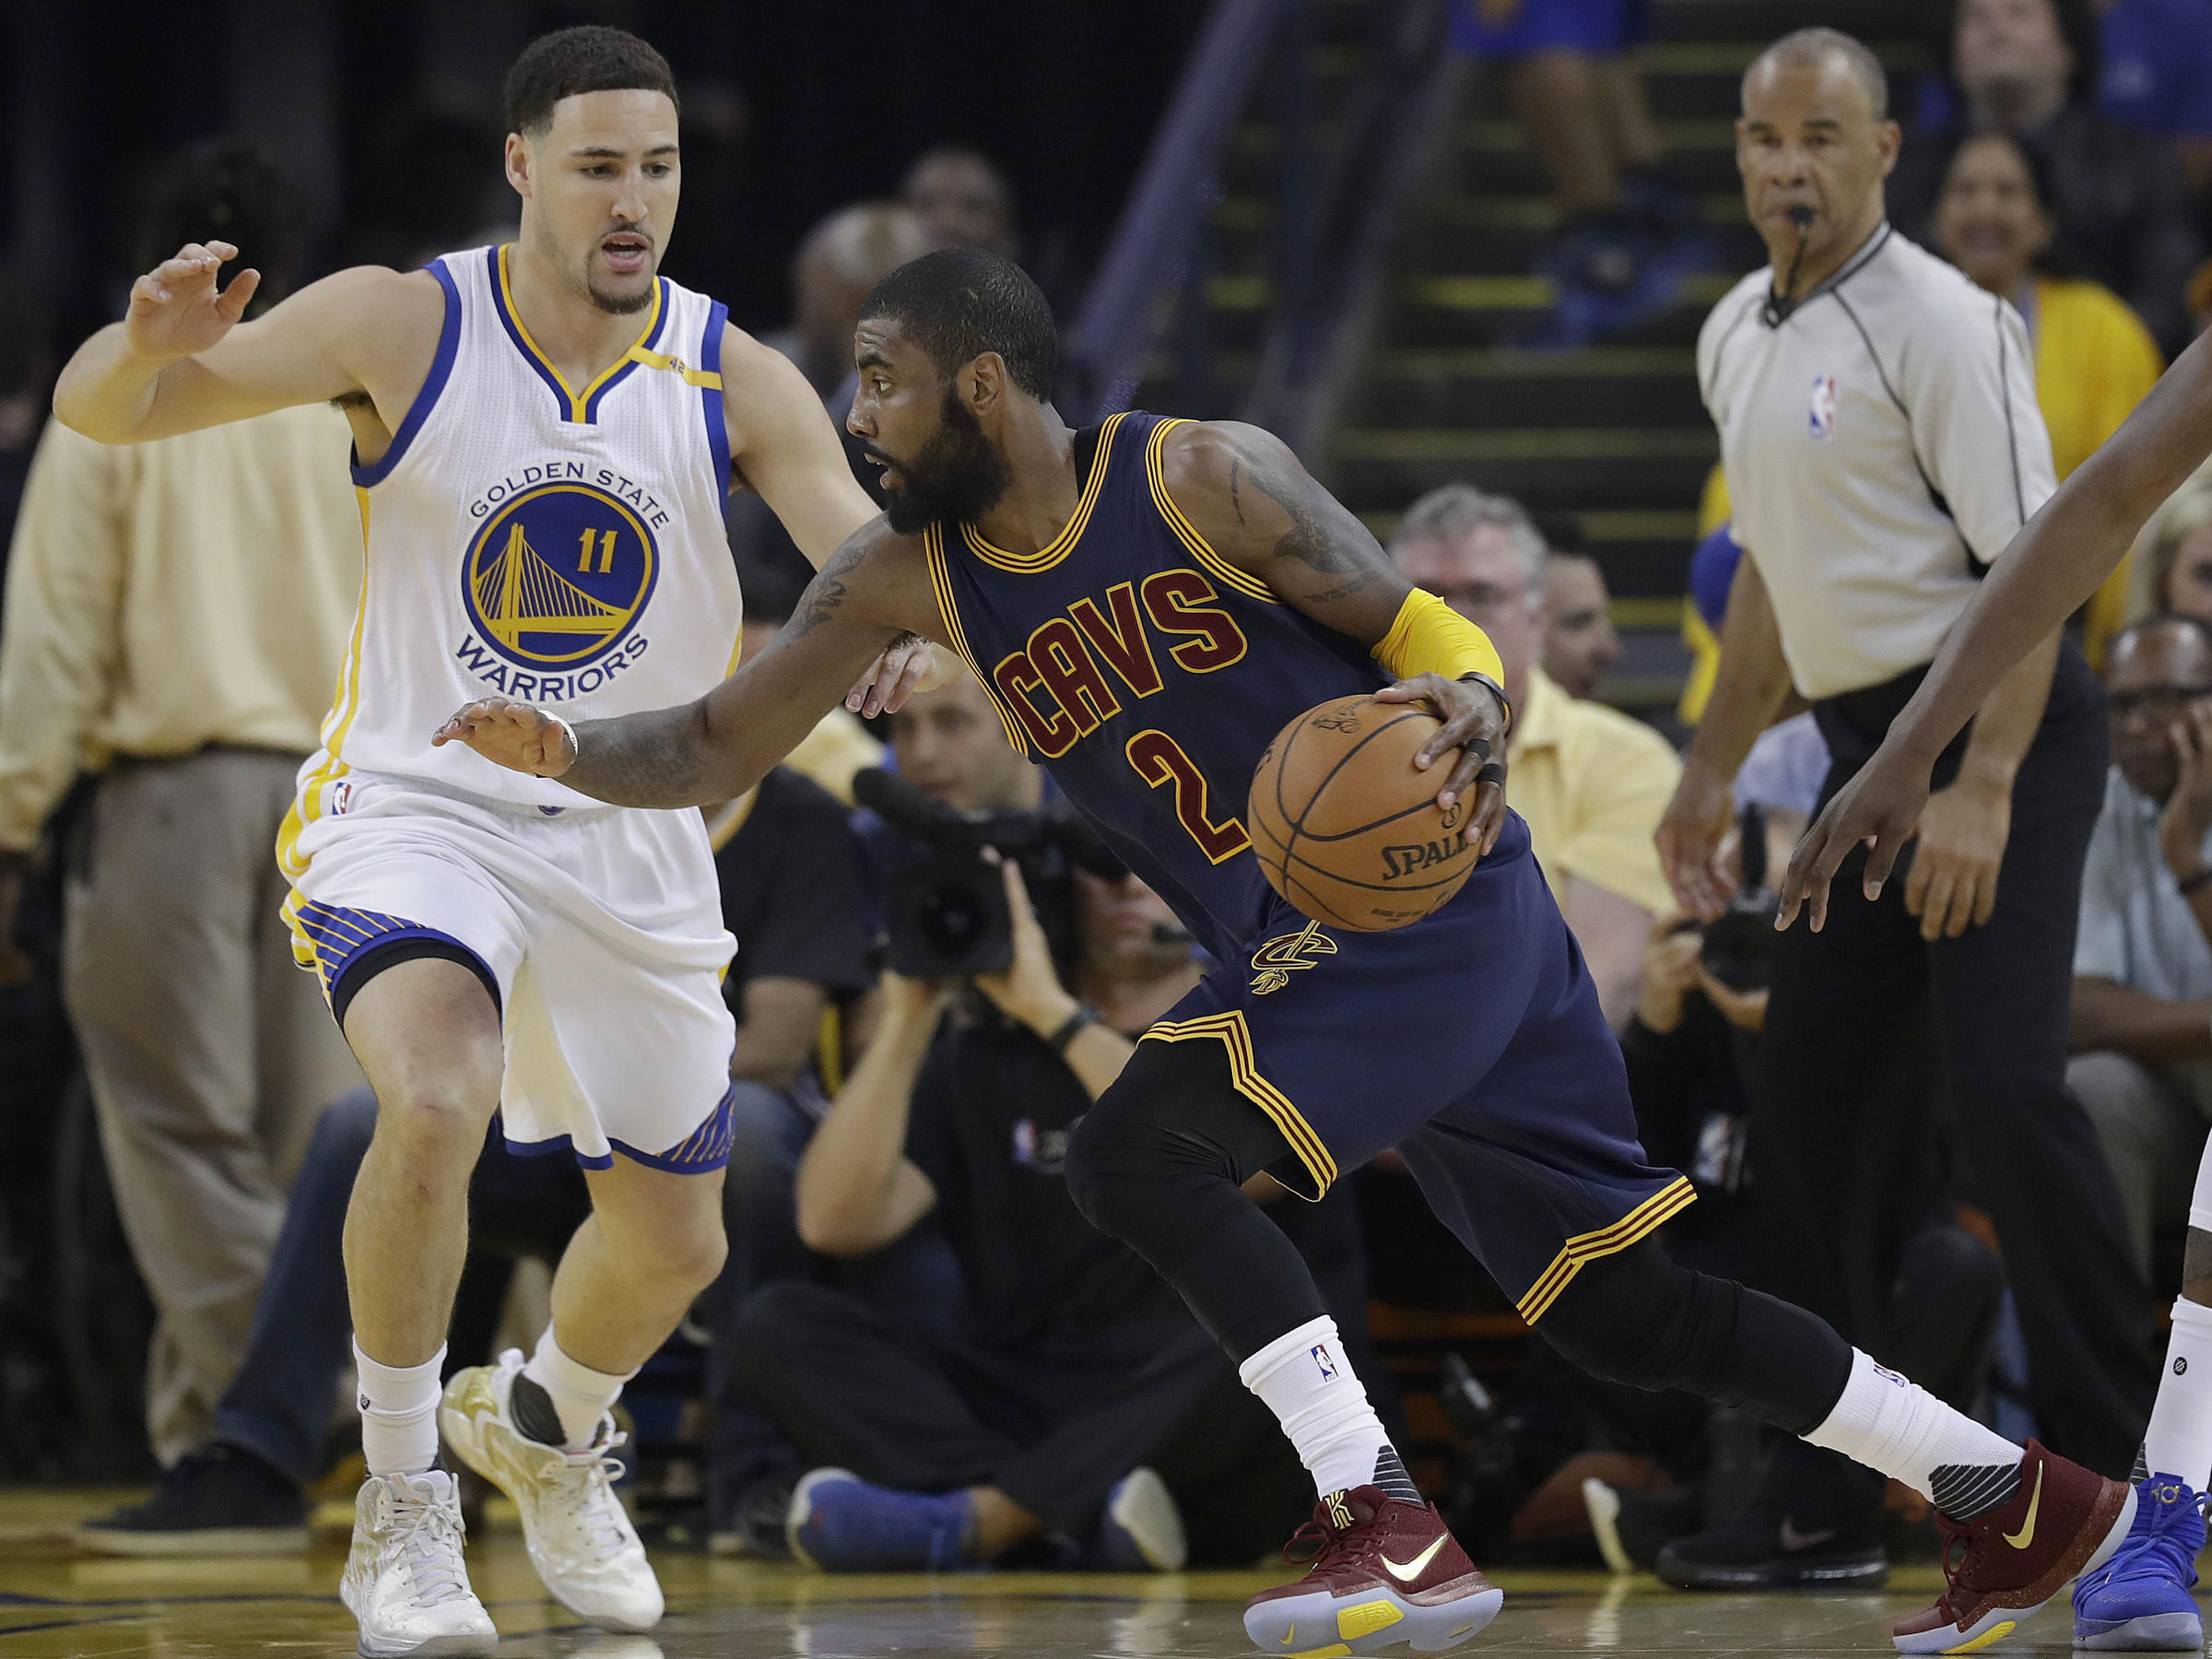 ef453cb1b959 Cleveland Cavaliers guard Kyrie Irving (2) drives against Golden State  Warriors guard Klay Thompson (11) during the first half of Game 1 of basketball s  NBA ...